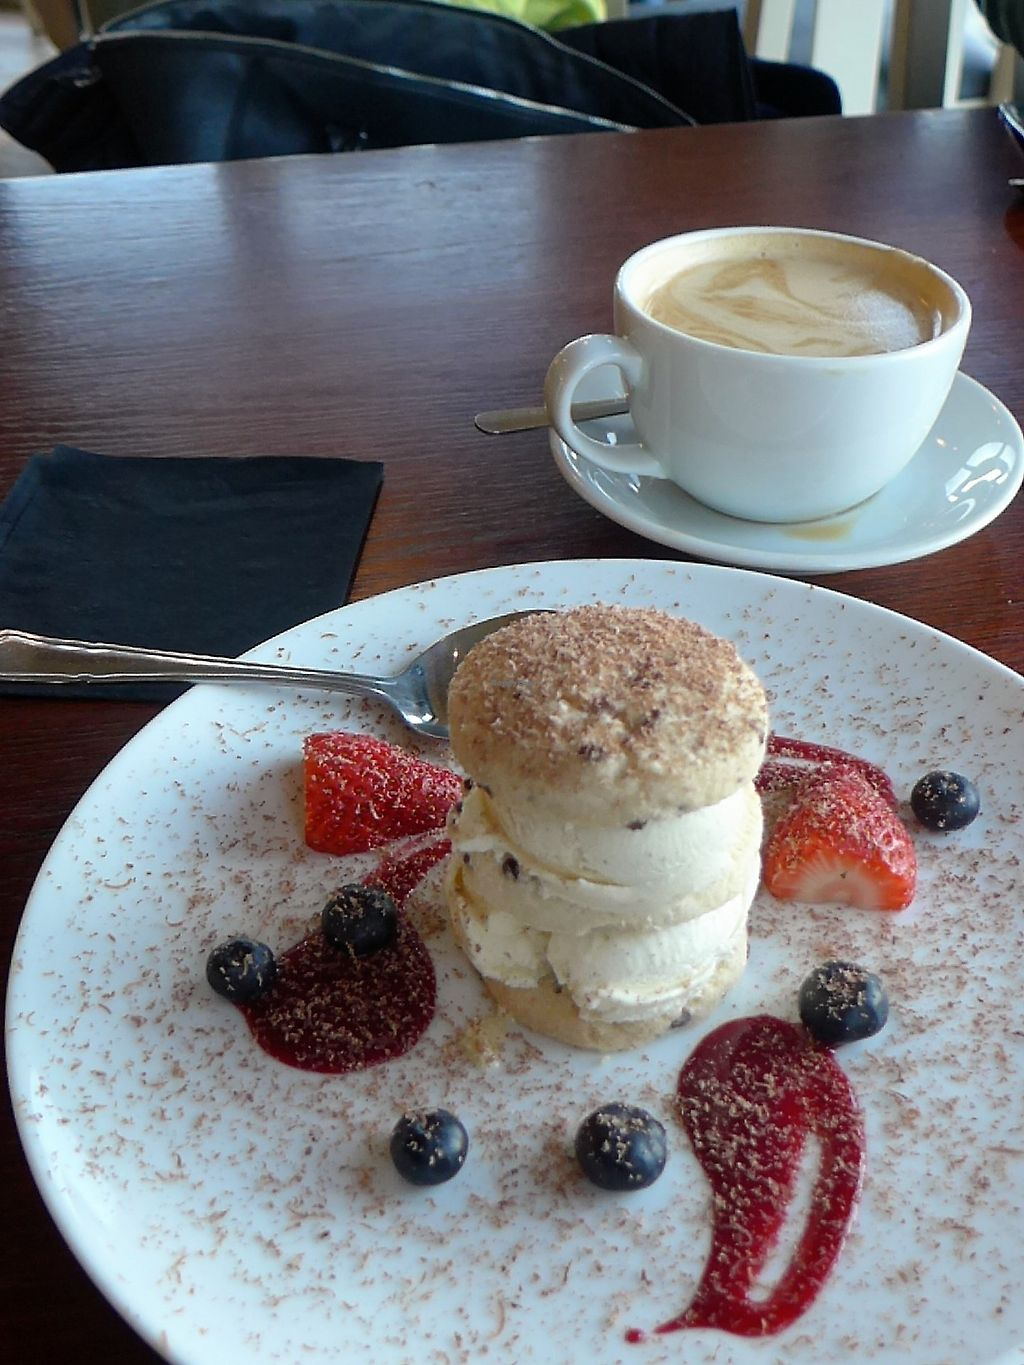 """Photo of Fjara Cafe Bar  by <a href=""""/members/profile/gffWillie"""">gffWillie</a> <br/>Delicious vegan ice-cream and home-made shortbread dessert <br/> April 15, 2018  - <a href='/contact/abuse/image/87770/386487'>Report</a>"""